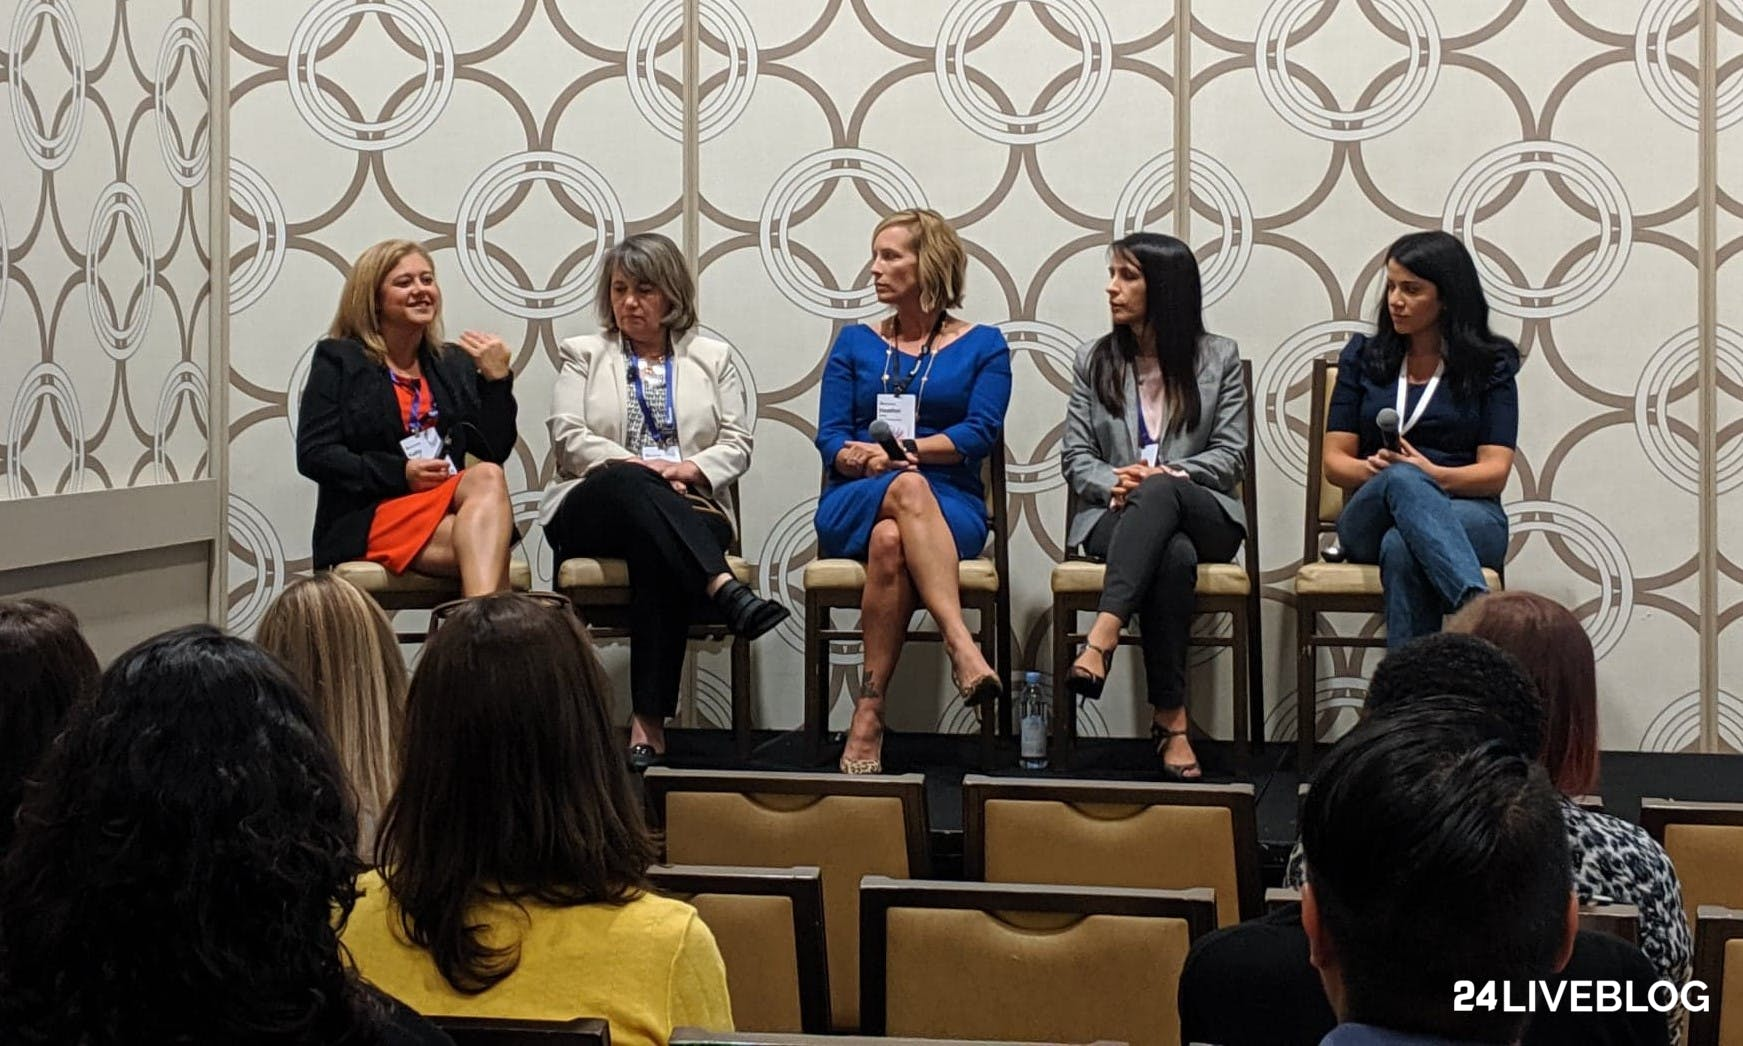 Women in Business Panel: Grit, Balance, Success & Growth Image | BlackLine Magazine